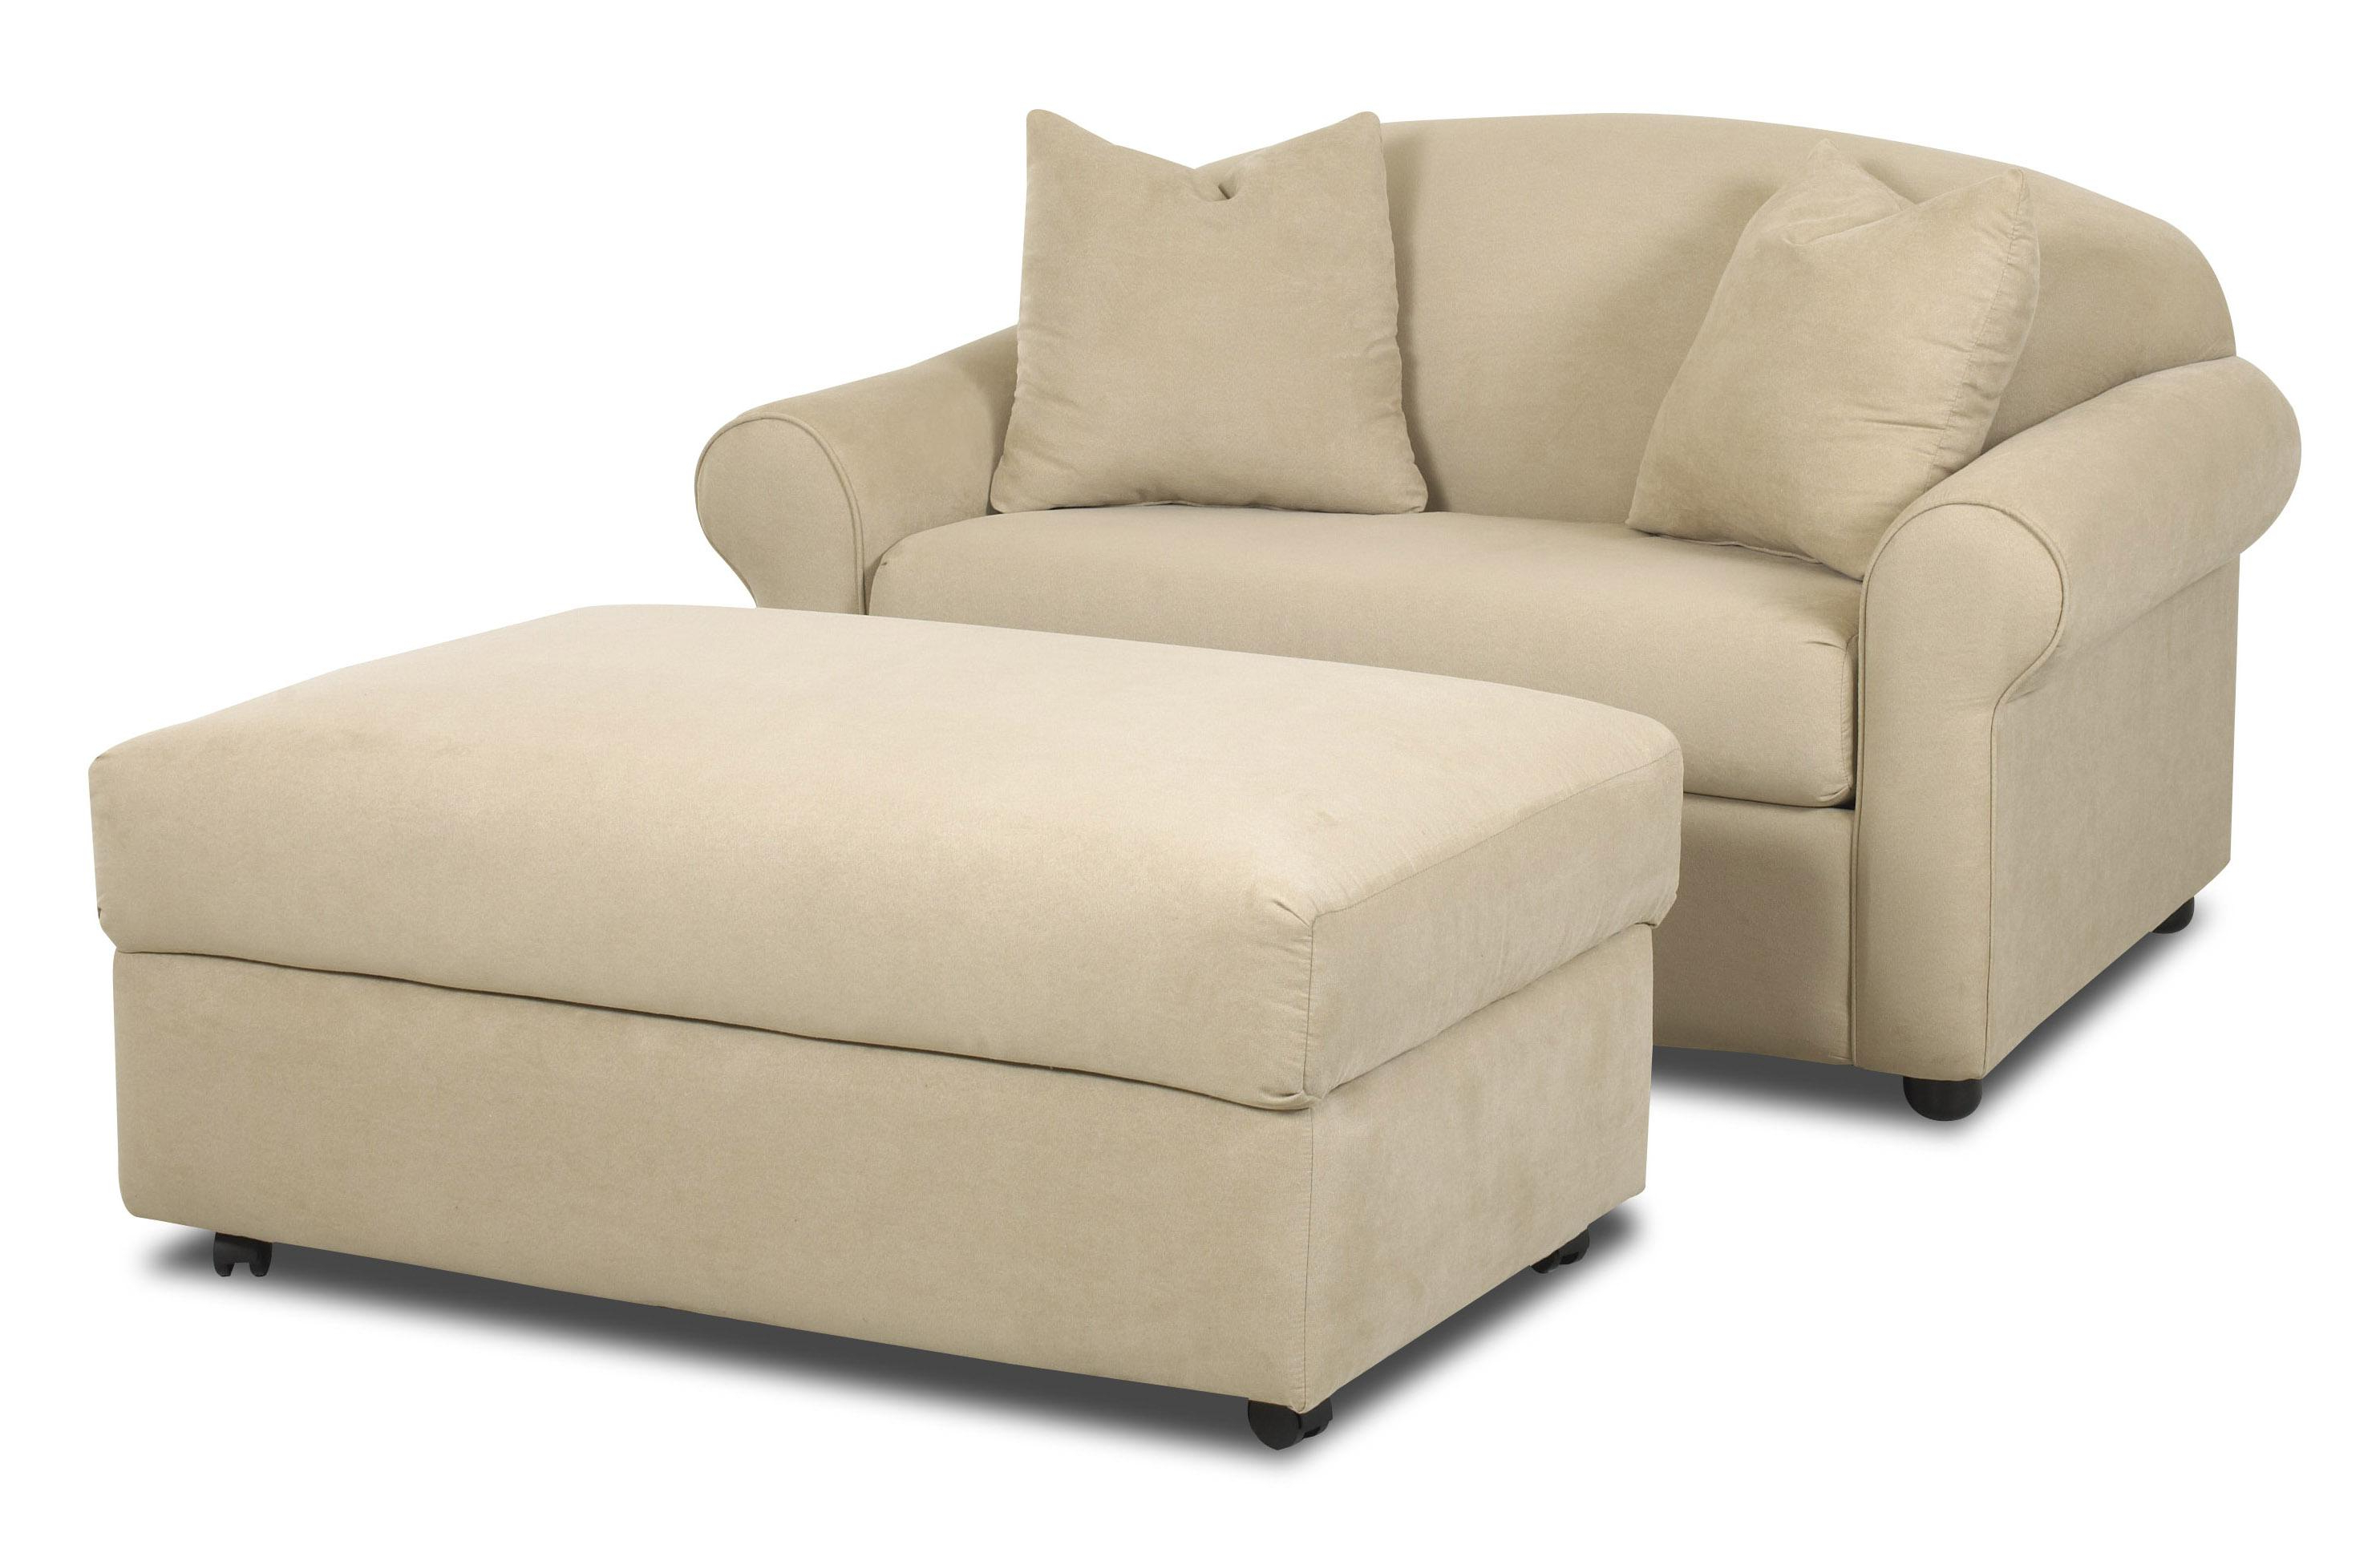 Klaussner Possibilities Chair Sleeper And Storage Ottoman Set Throughout Popular Sofa Chair With Ottoman (View 7 of 20)